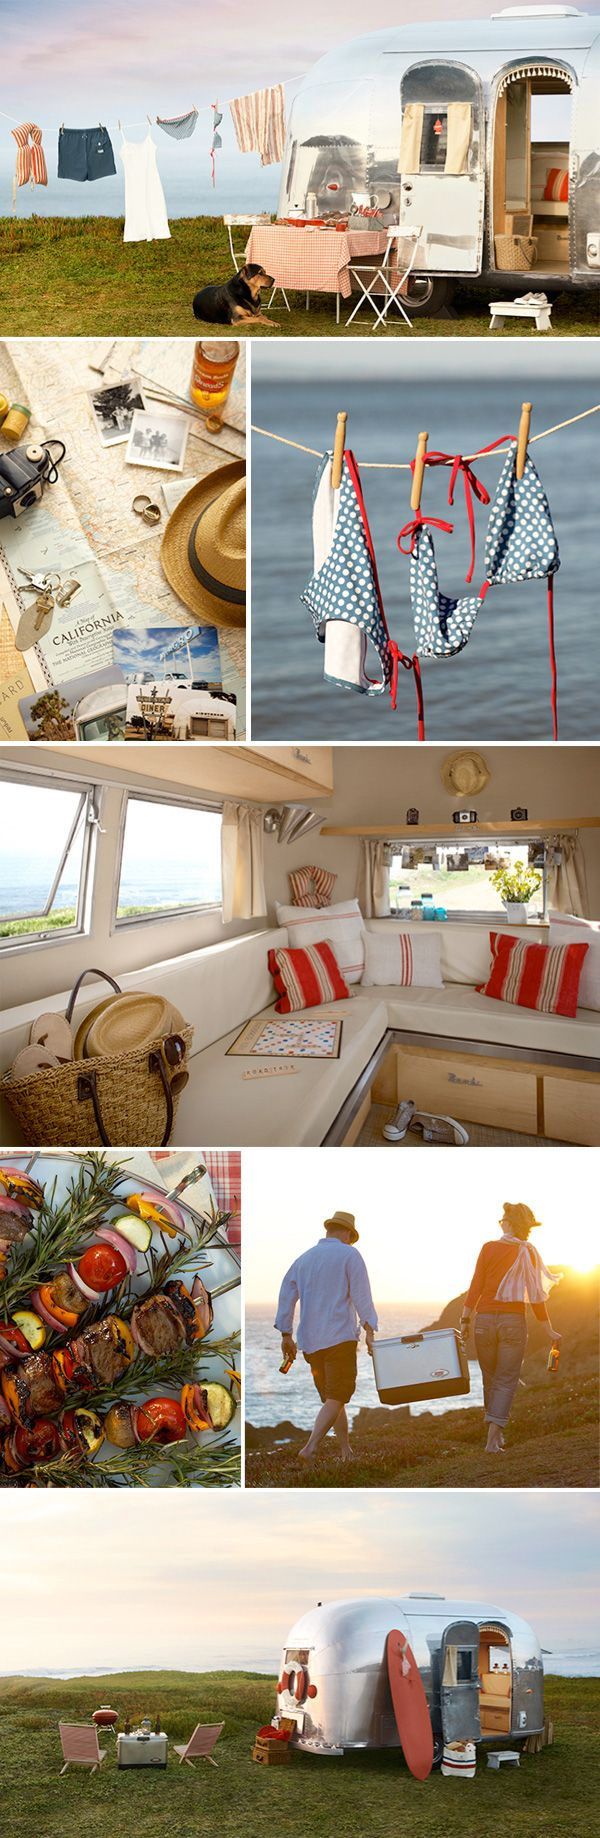 Some day...I'd like to travel like this lovely couple!  That's one of our dreams...